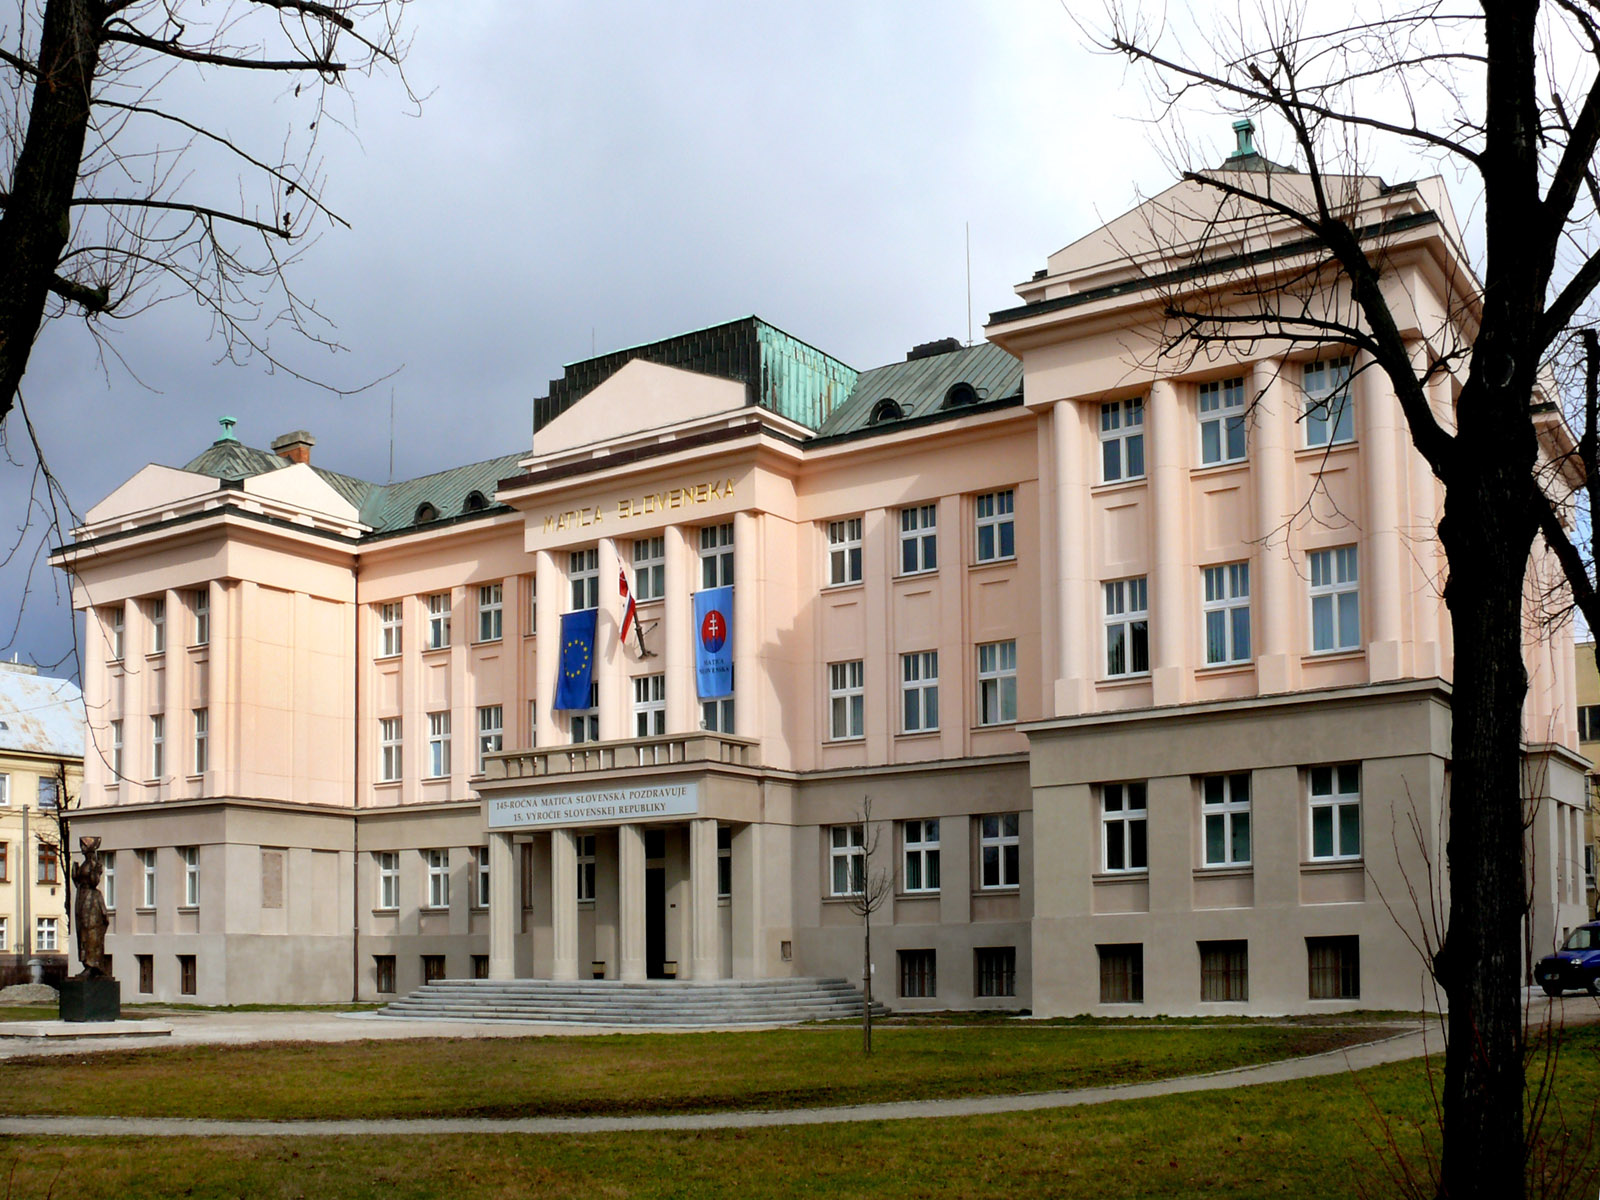 The second historical building and current seat of Matica slovenská, Martin, 1924 – 1926 (photo by Peter Fratrič)